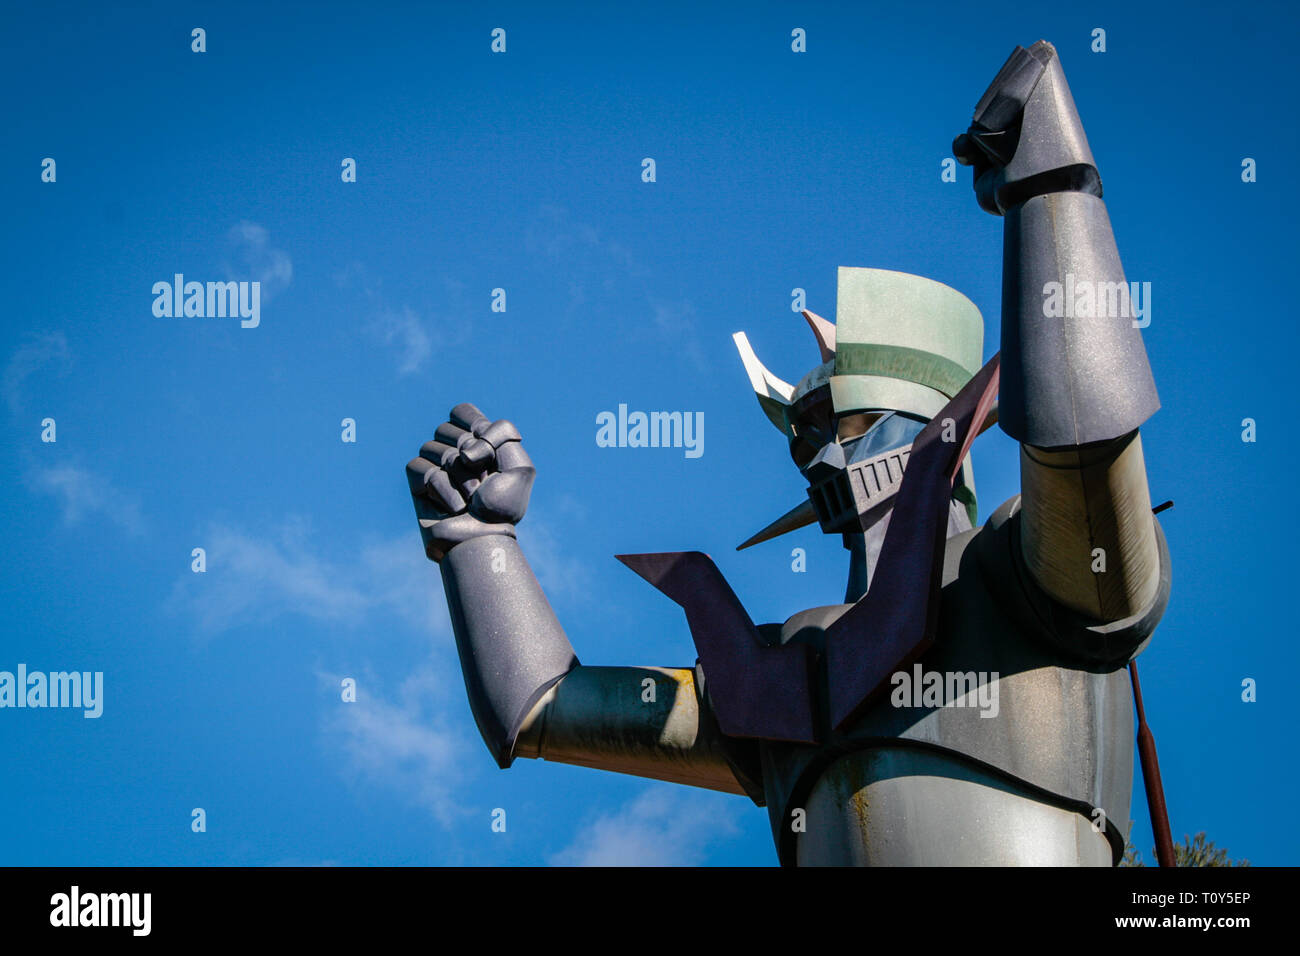 Robot Mazinger Z Stock Photos & Robot Mazinger Z Stock